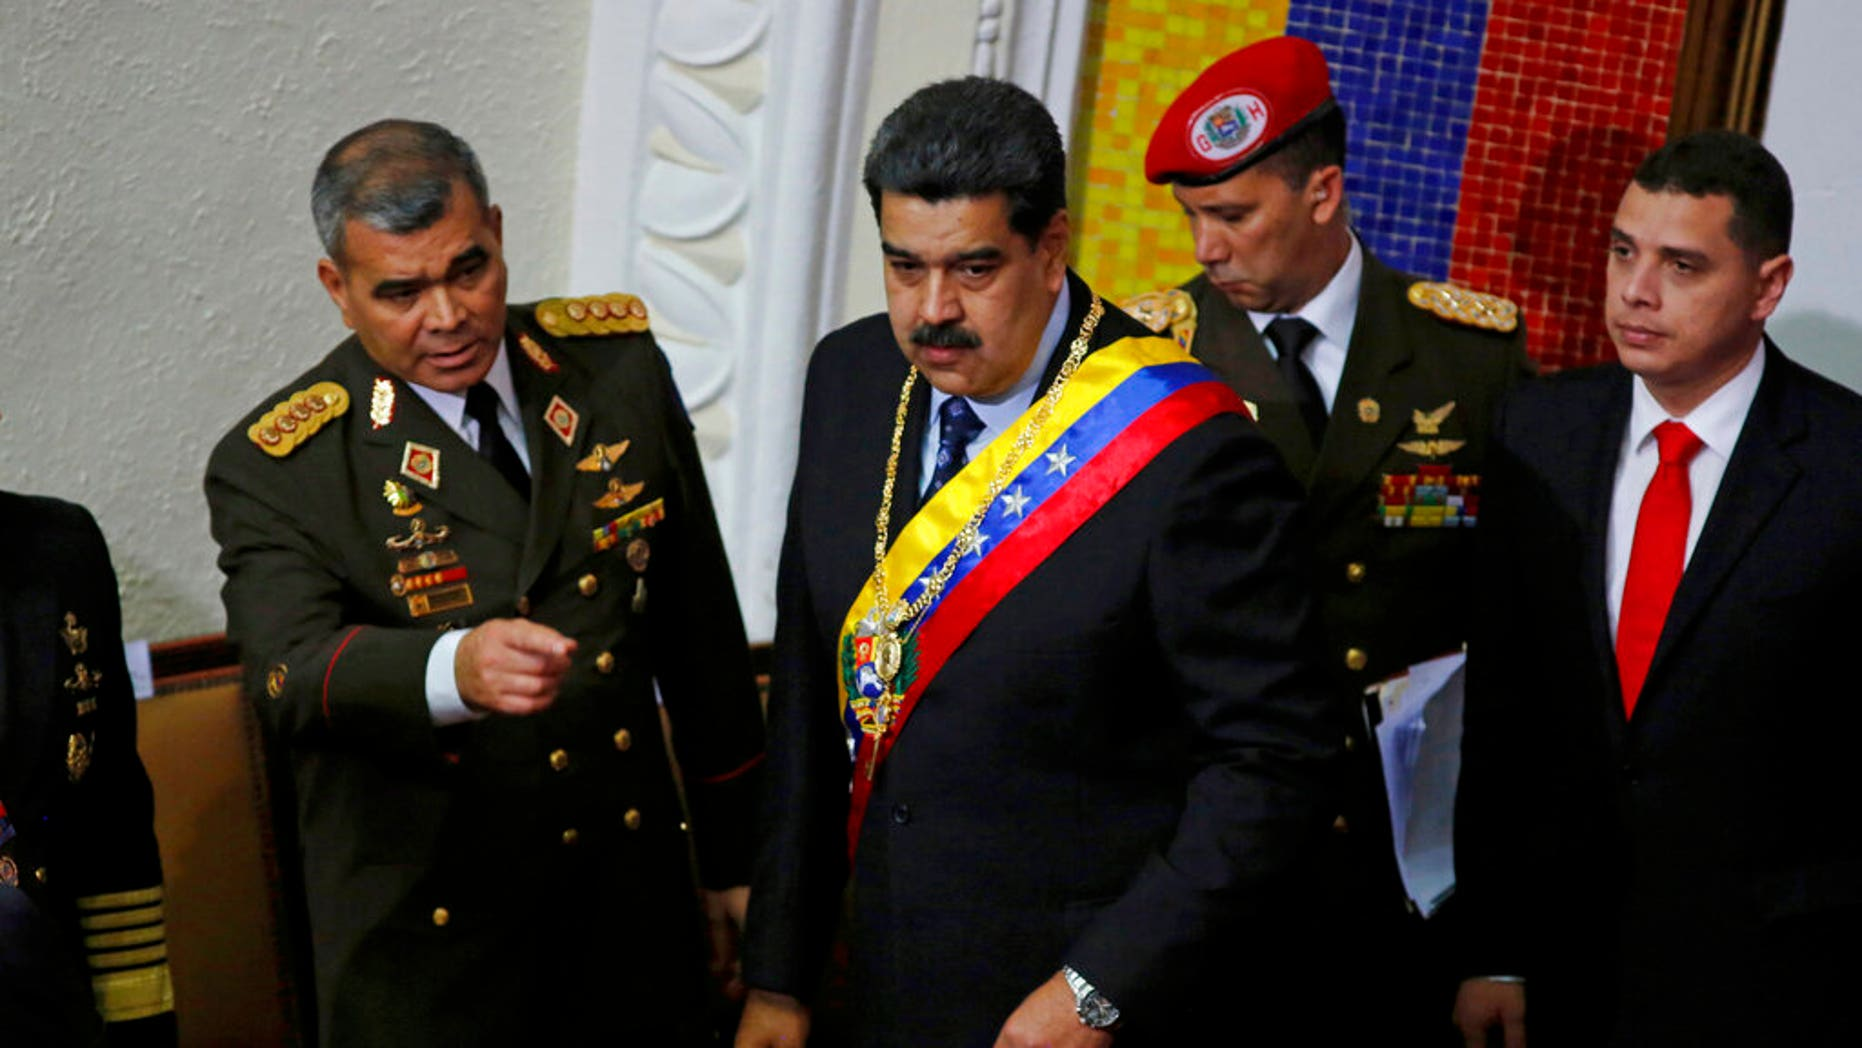 Venezuela's President Nicolas Maduro, center, stands with his Defense Minister Vladimir Padrino Lopez before giving his annual address to the nation to members of the Constitutional Assembly inside the National Assembly in Caracas, Venezuela, Monday, Jan. 14, 2019.